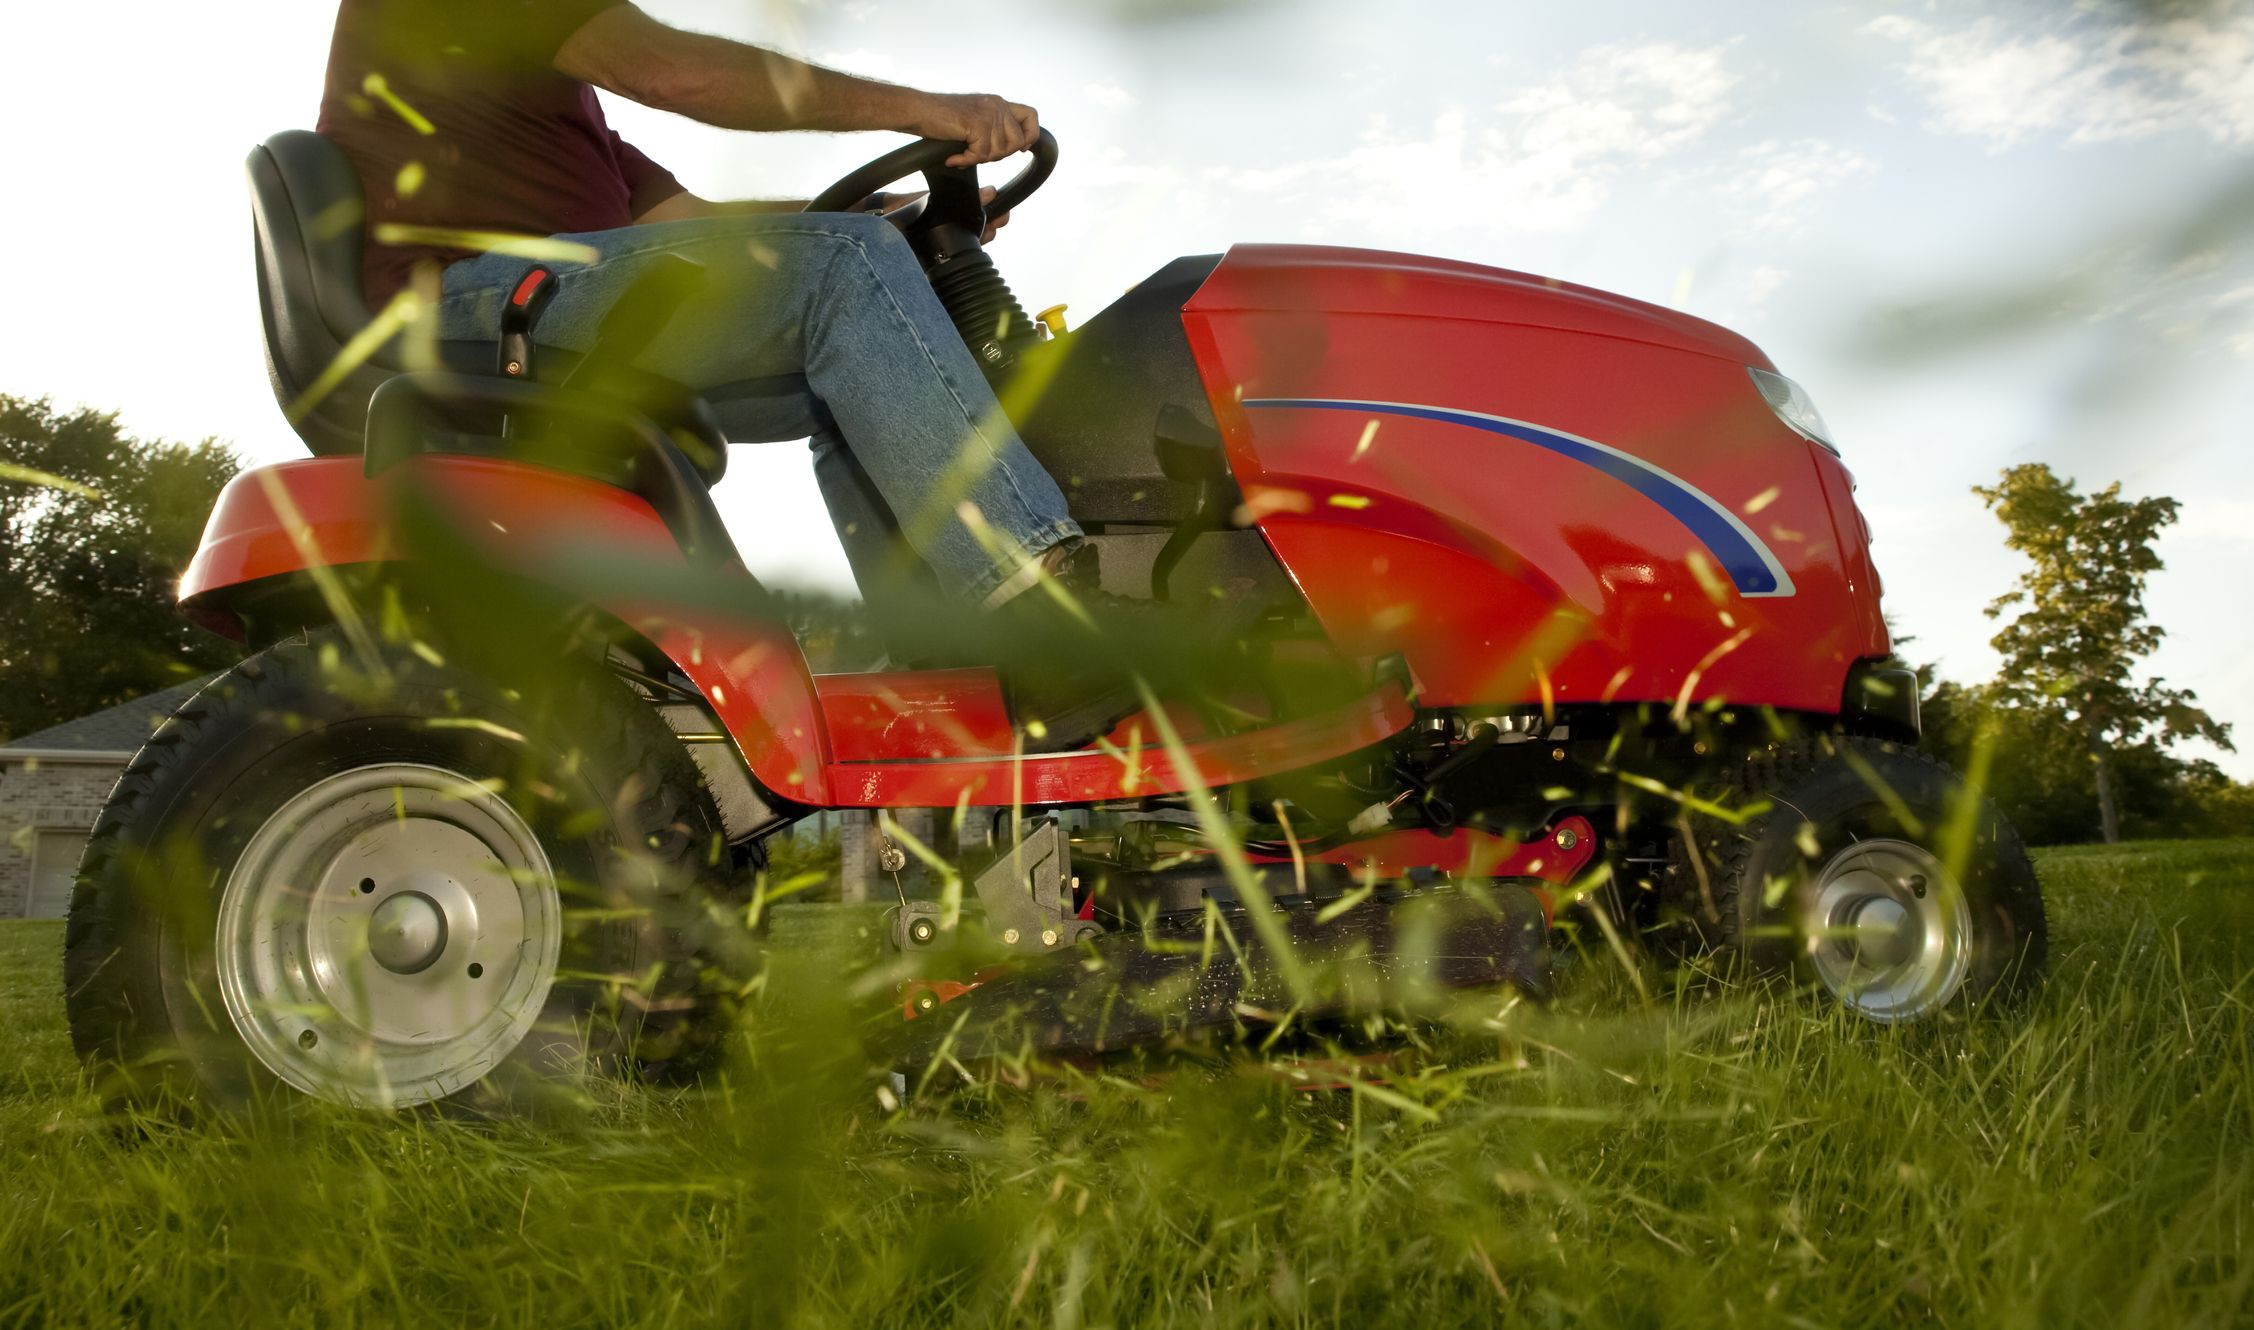 Types of Lawn Mowers | How to Buy the Right Lawn Mower